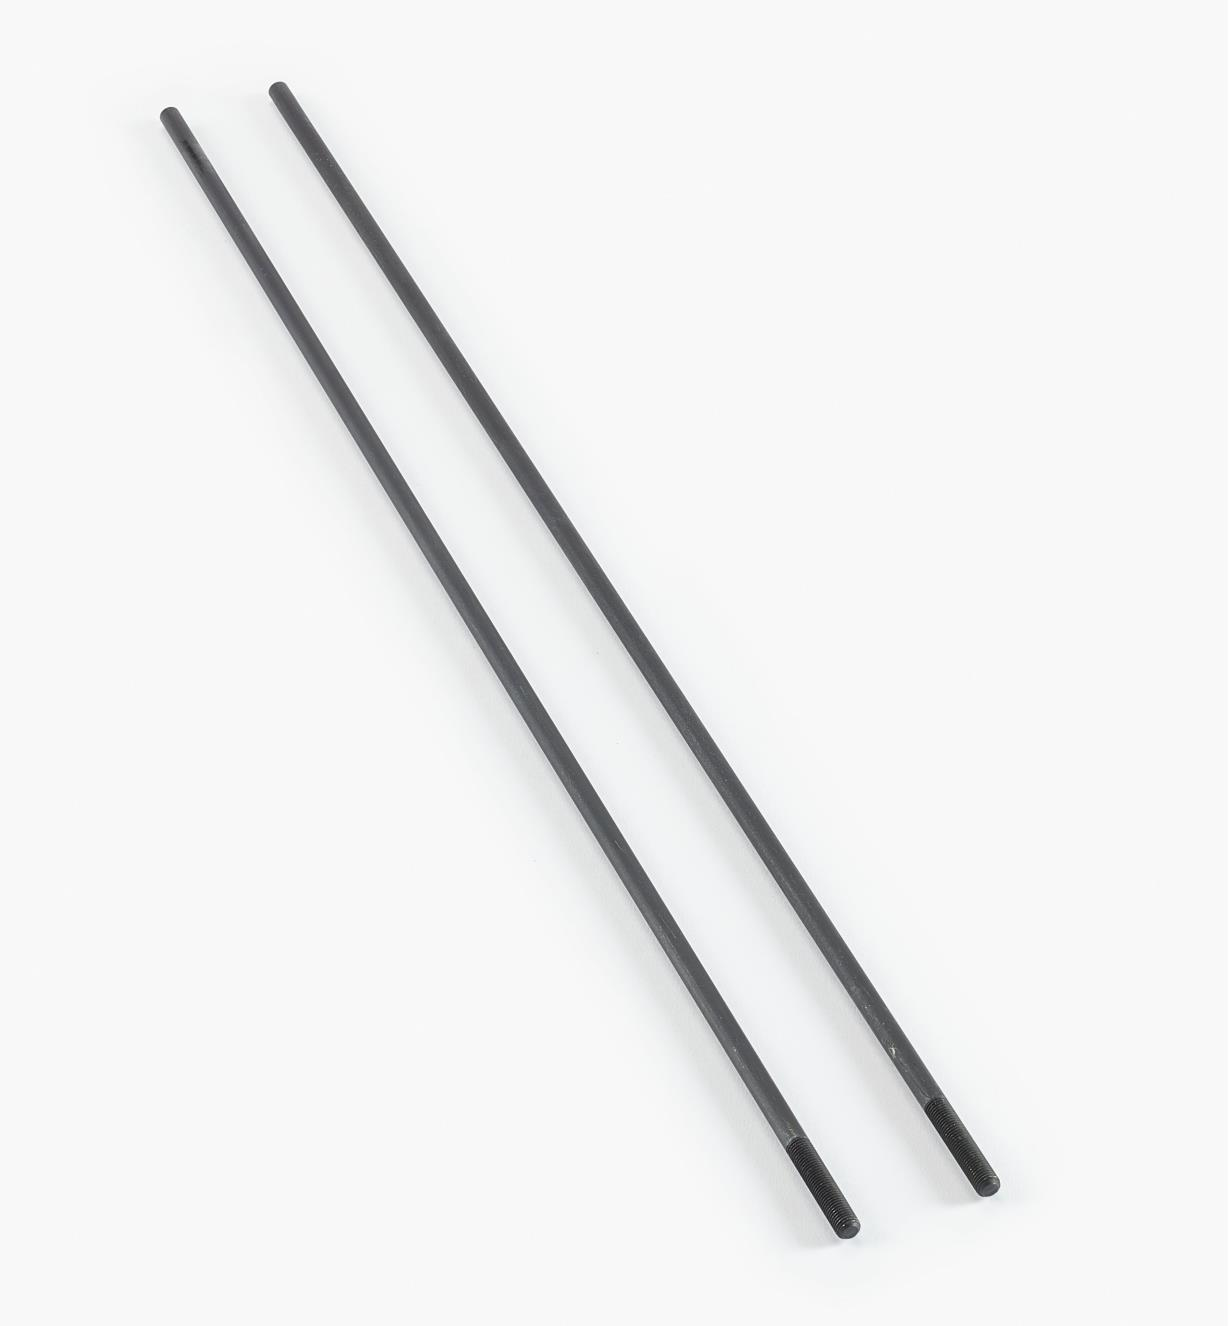 05J0315 - Pr. Long Rods